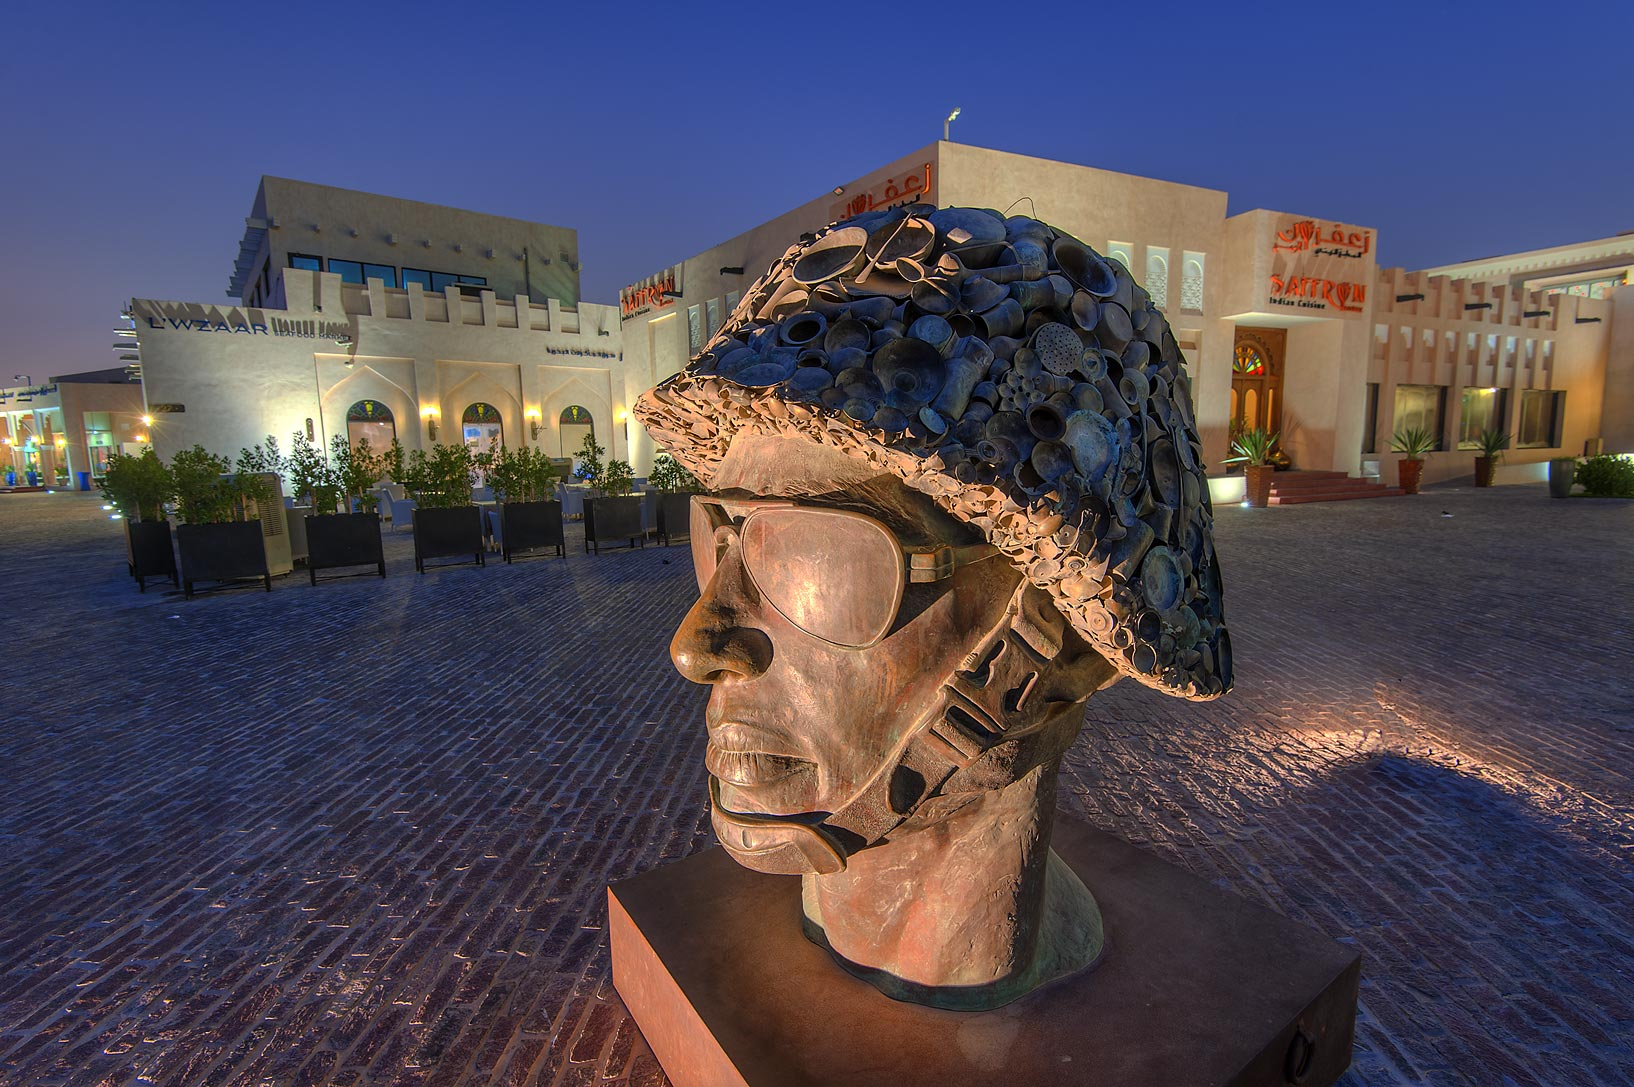 Mahatma Gandhi portrayed in military headgear by...Katara Cultural Village. Doha, Qatar